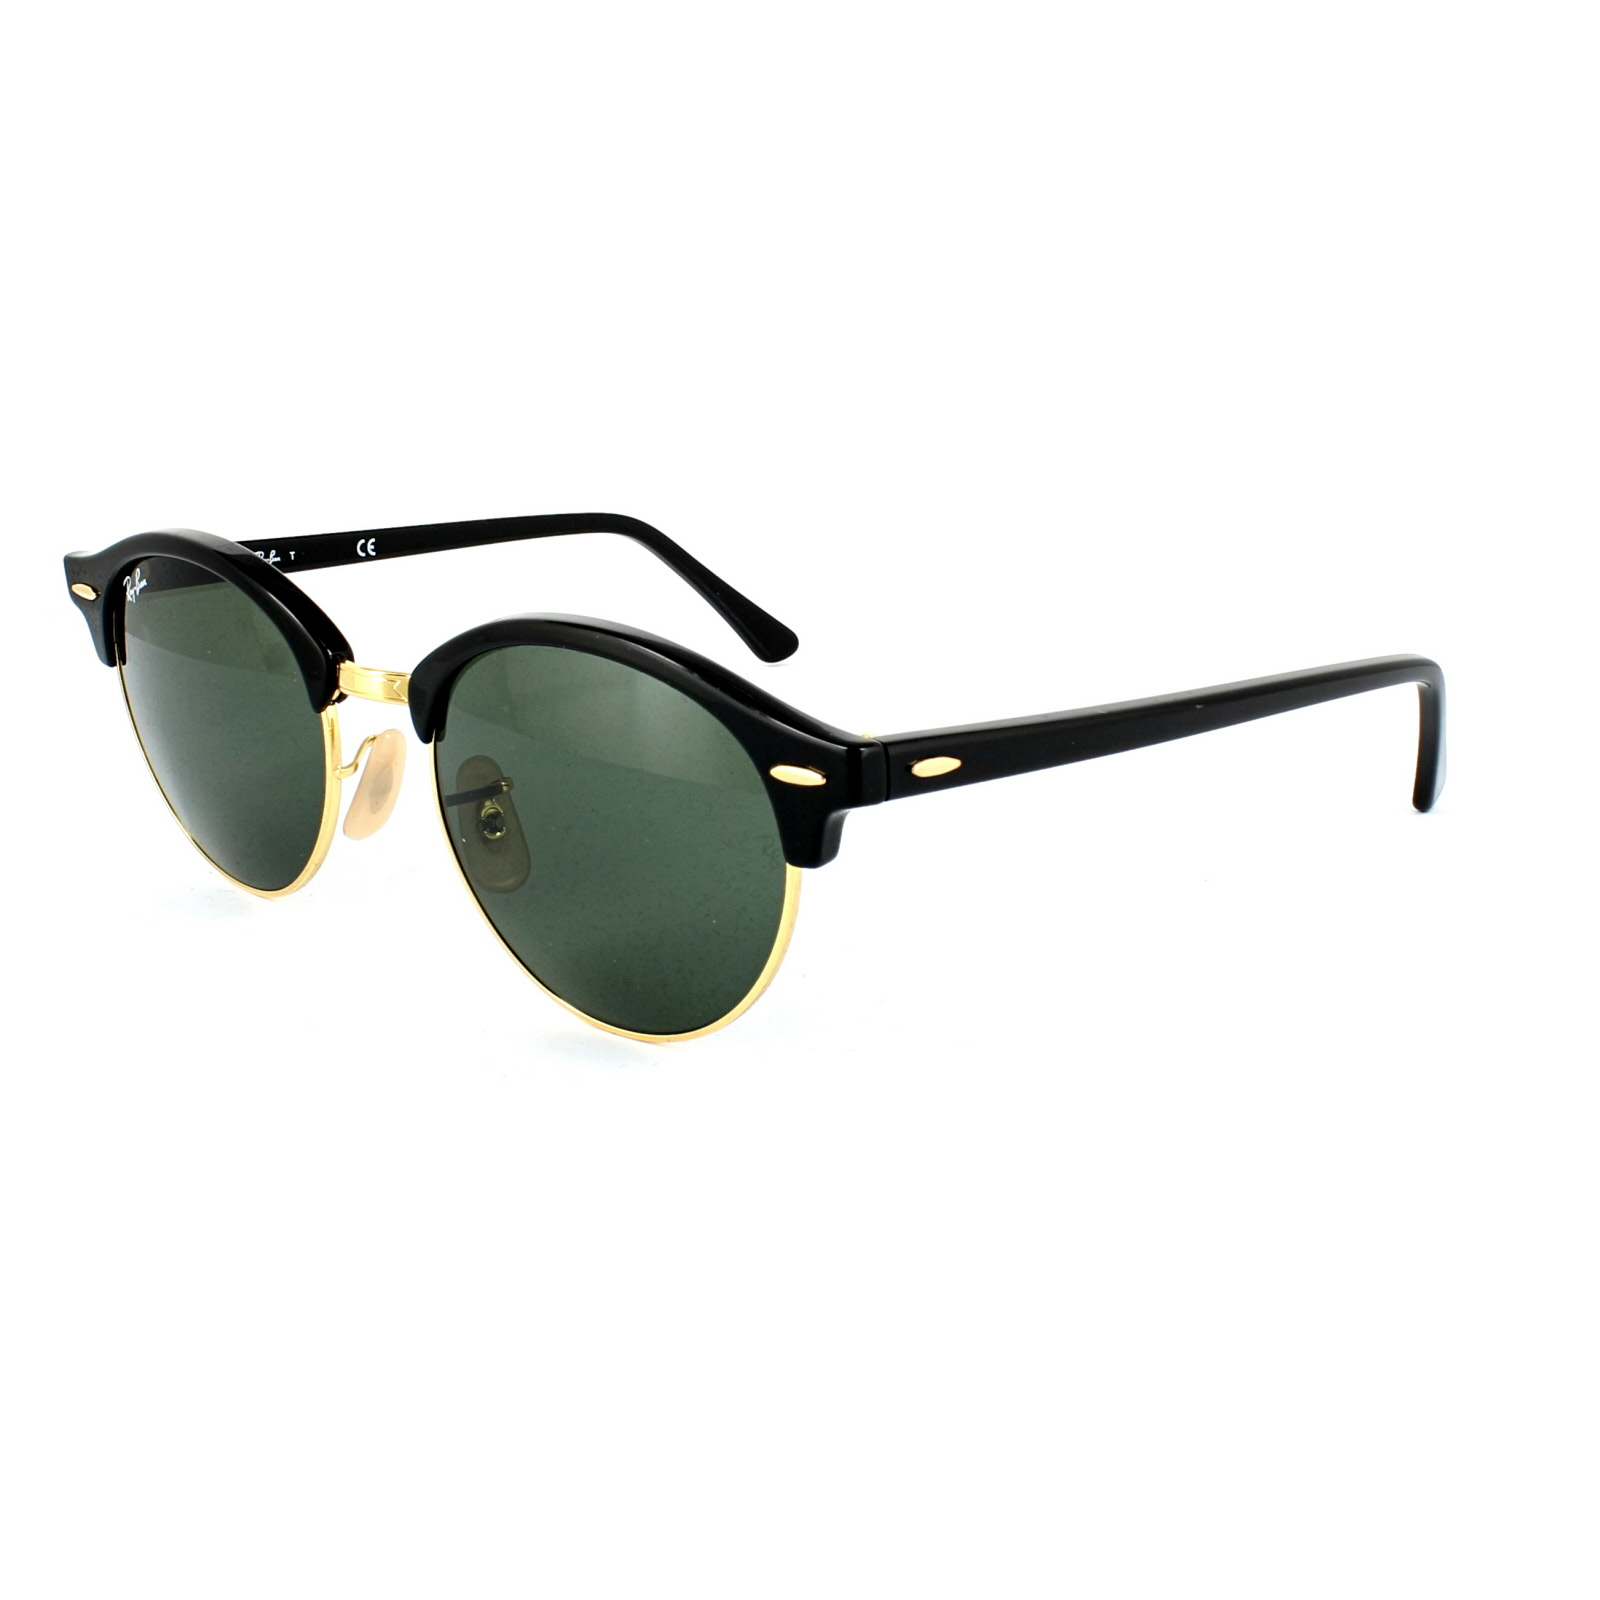 69771418fe6 Cheap Ray-Ban Clubround 4246 Sunglasses - Discounted Sunglasses